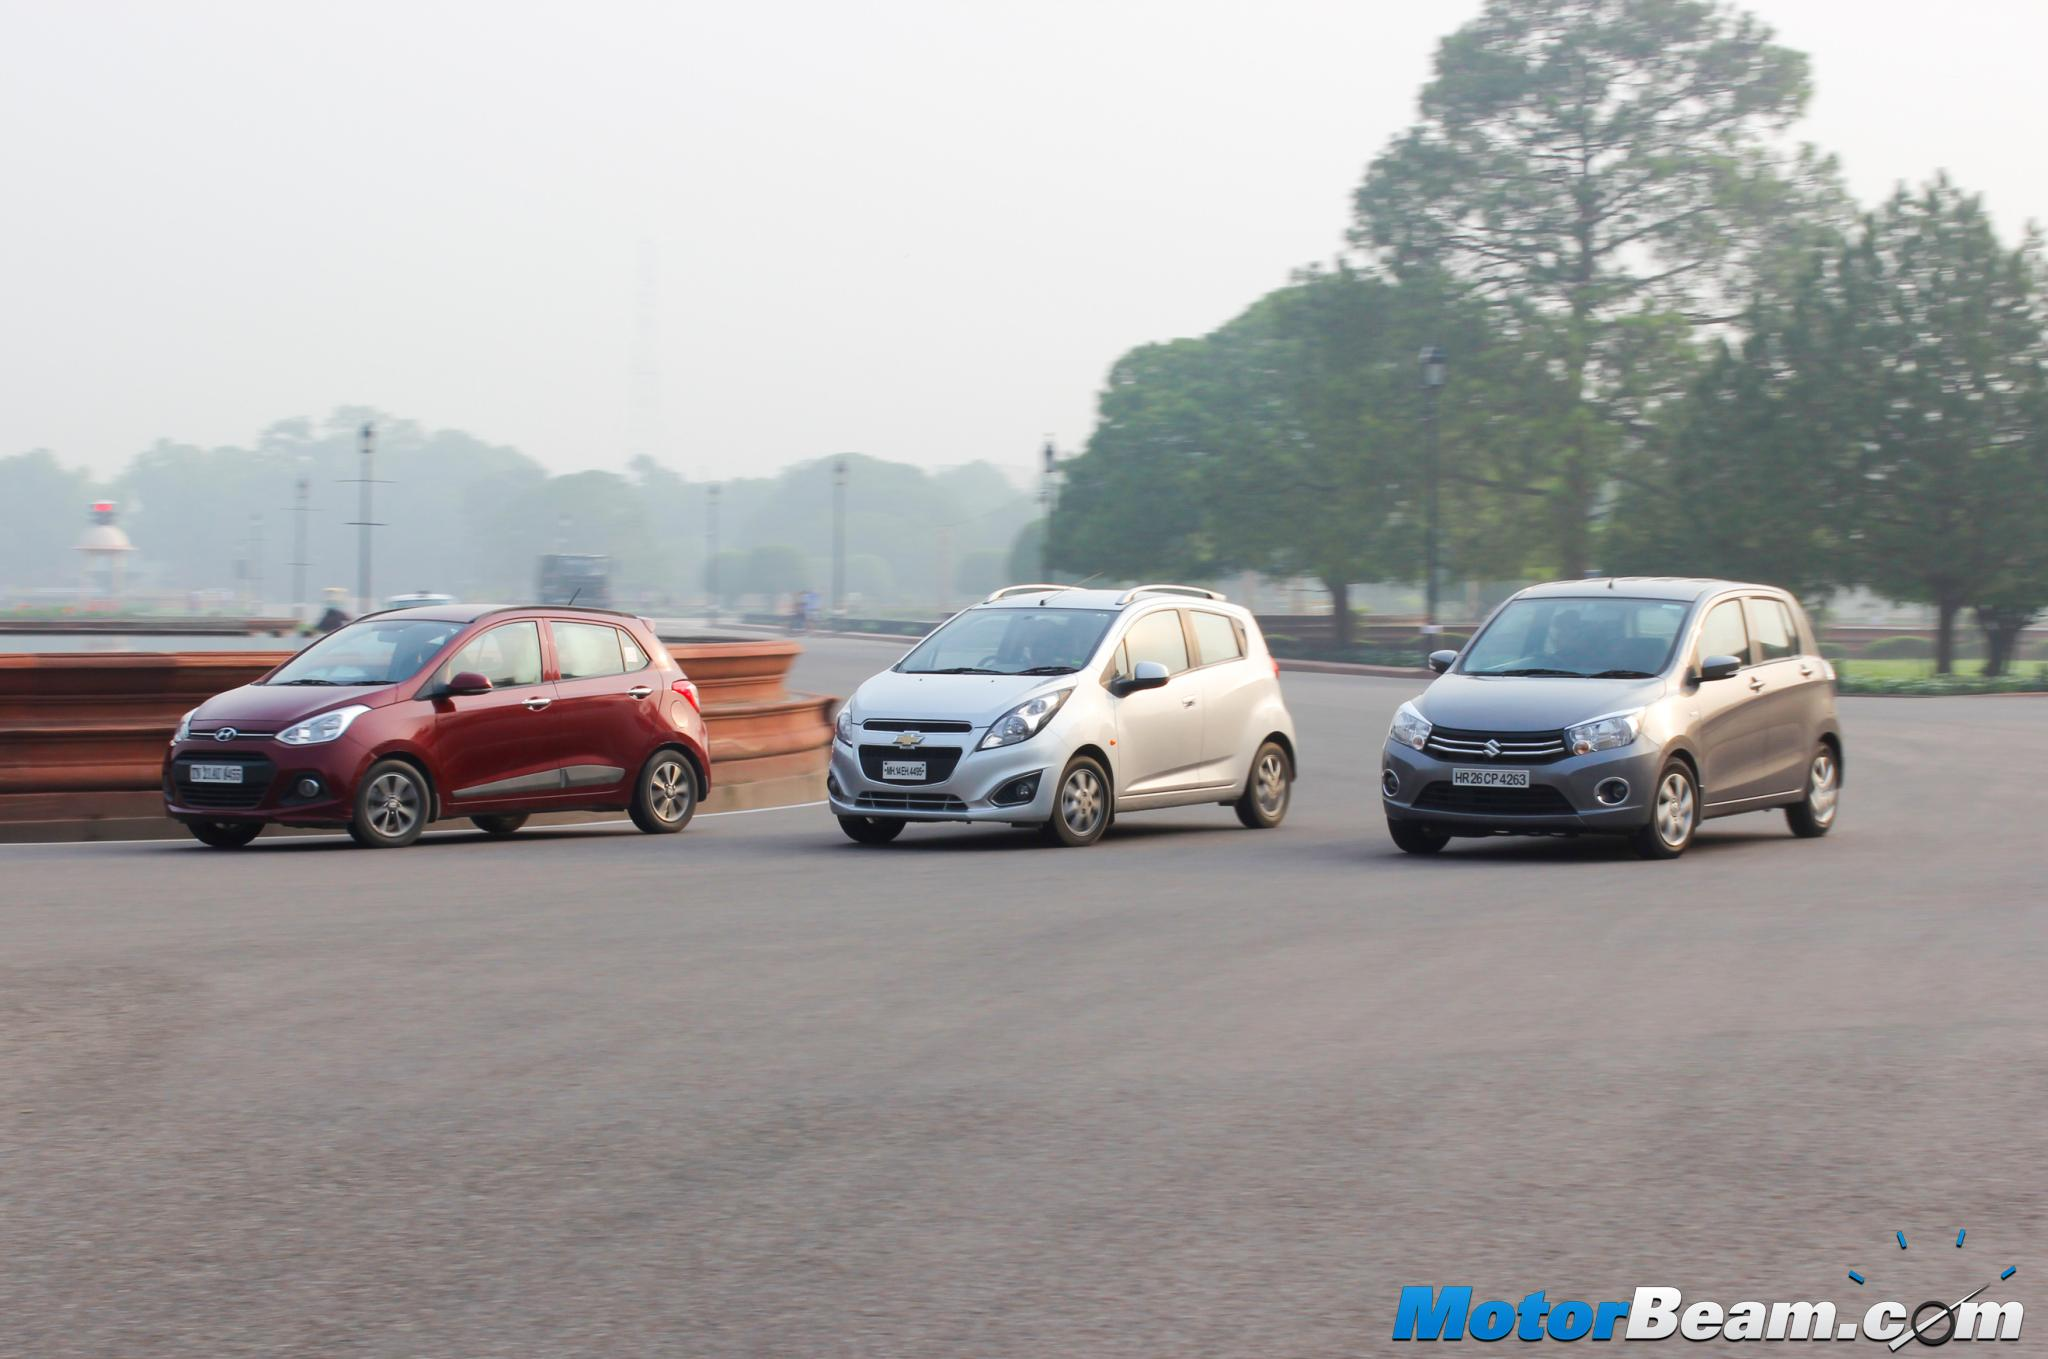 Chevrolet Beat Vs Tata Tiago Vs Maruti Celerio Vs Hyundai Grand